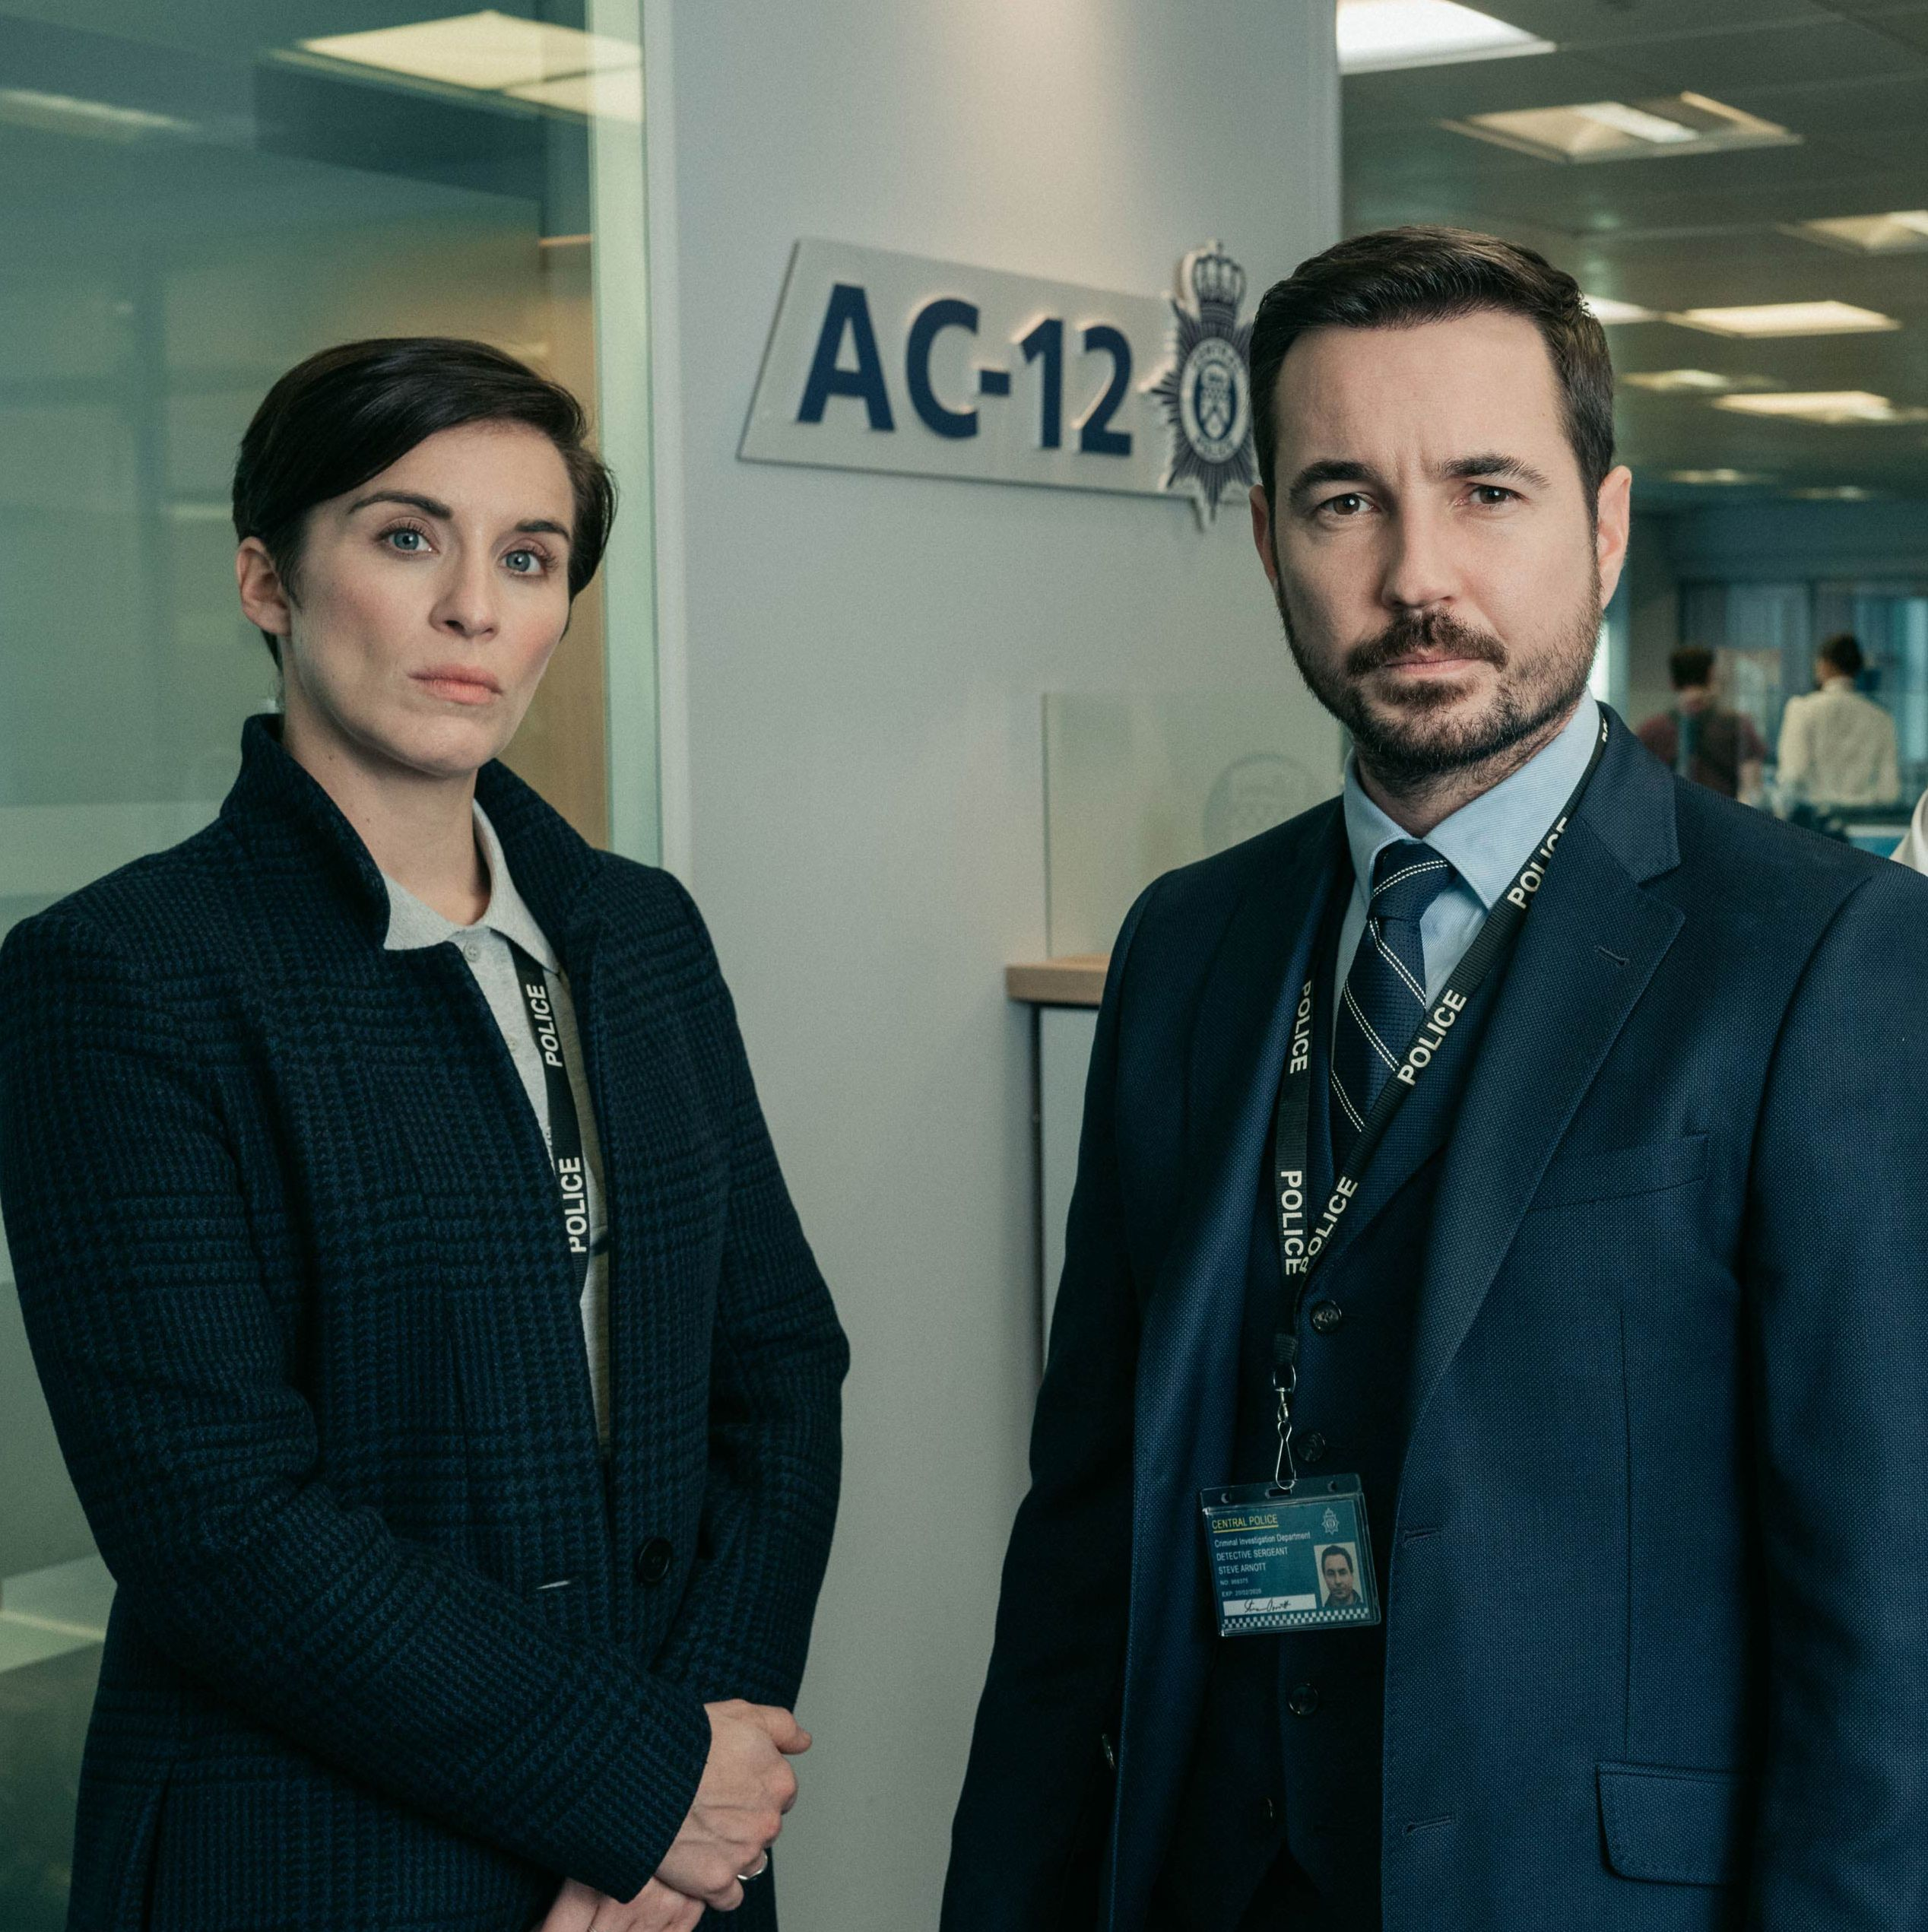 Line of Duty season 5 air date has finally been revealed by BBC One